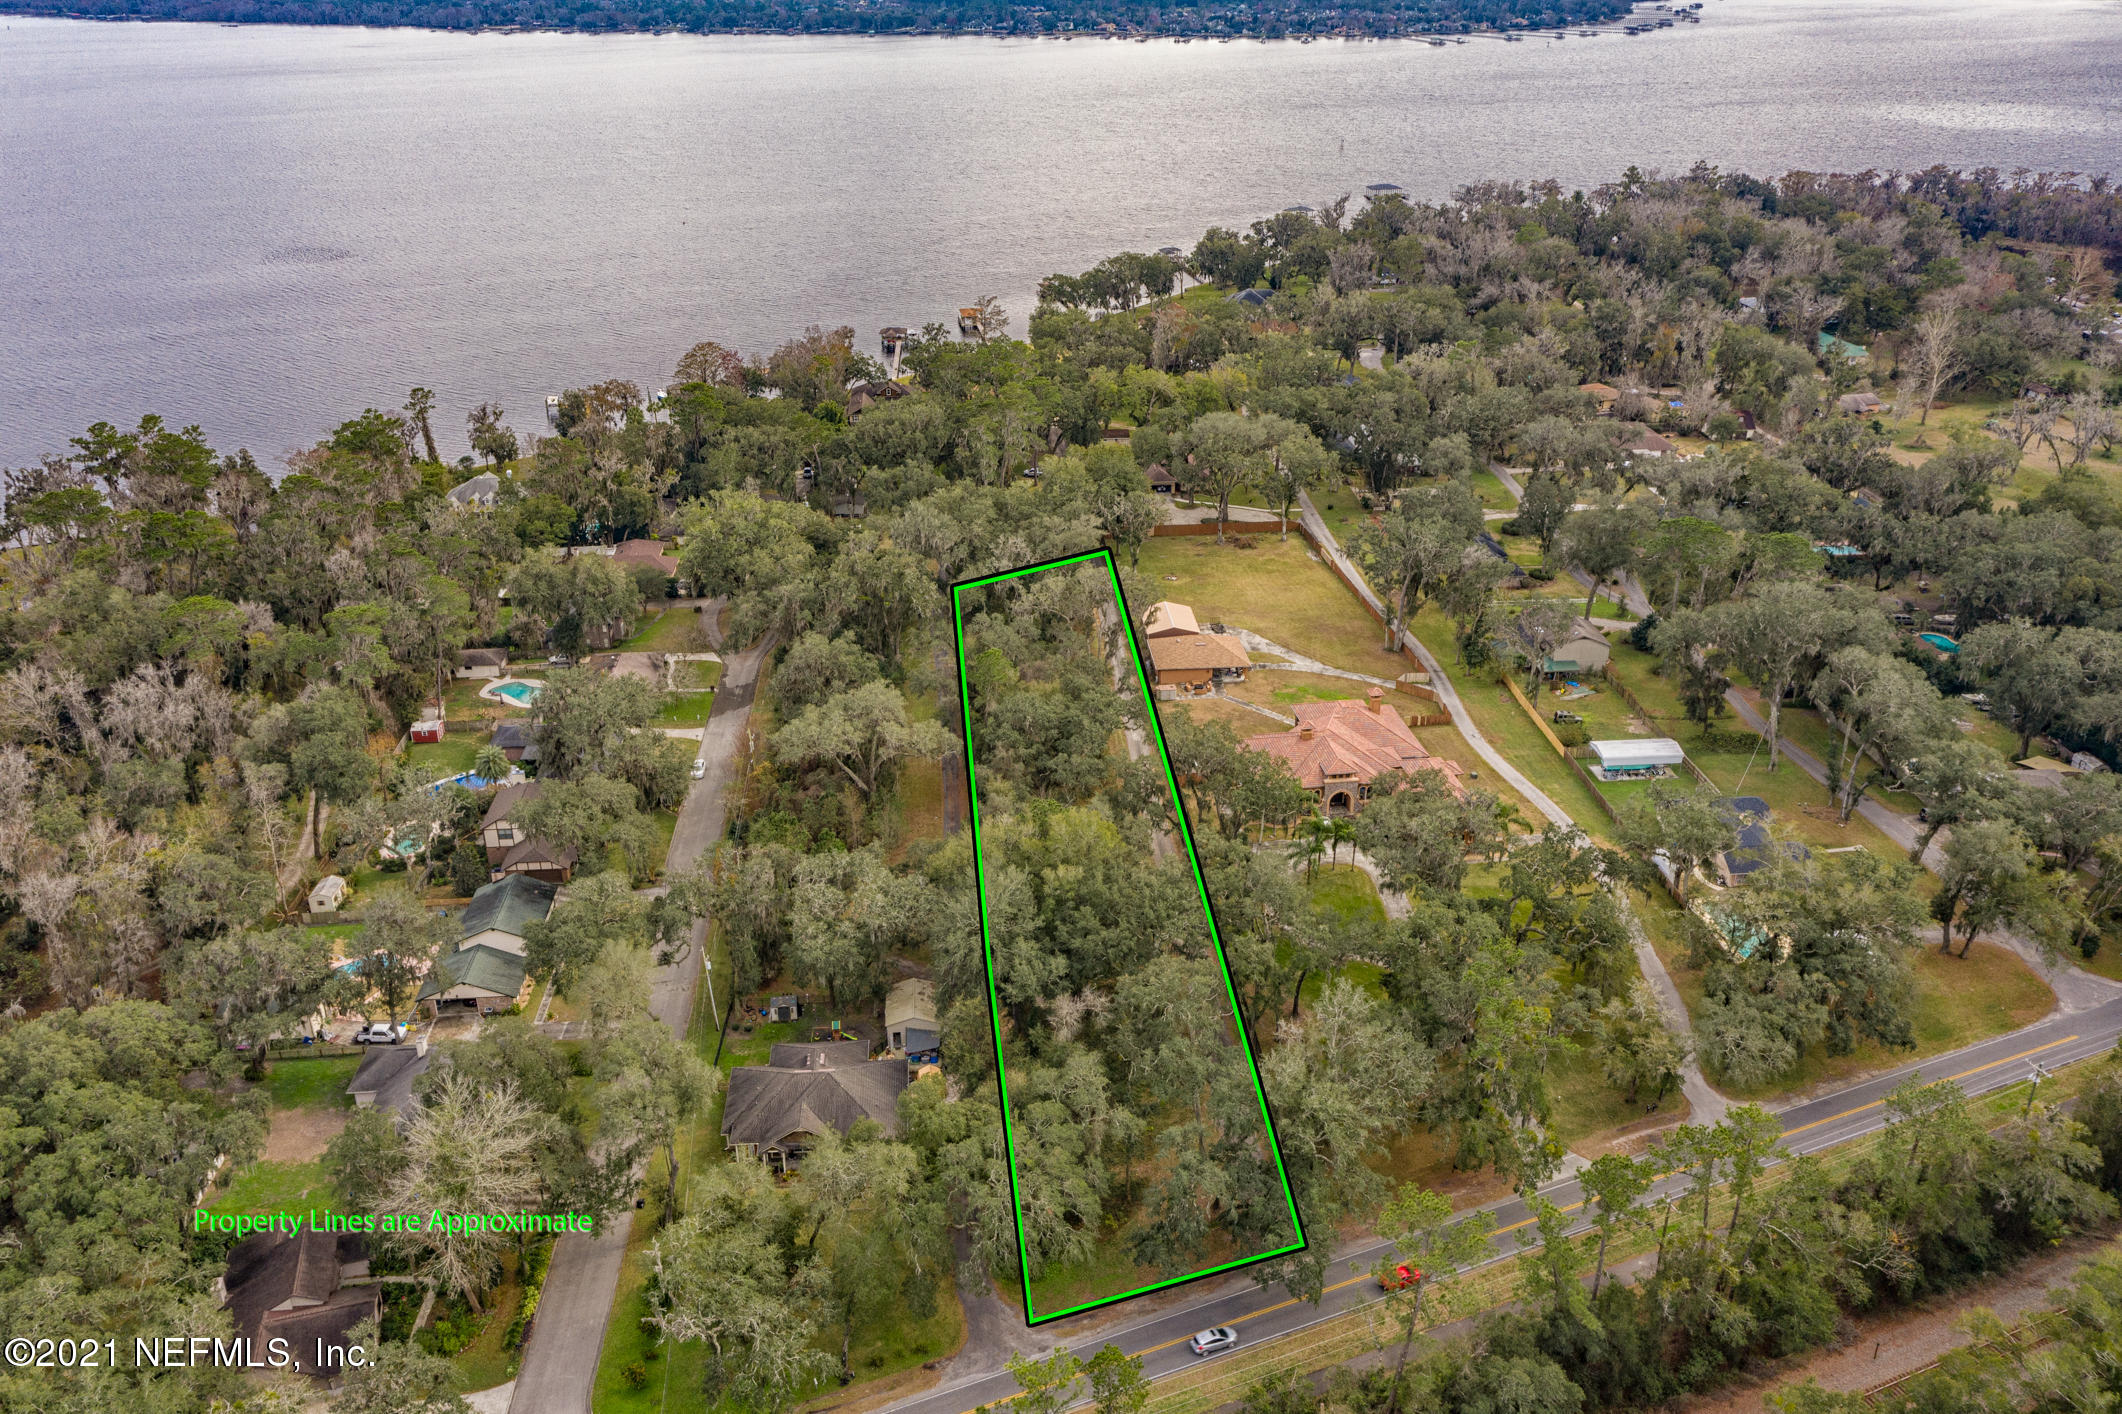 Nestled off Doctors lake Drive, this property offers a chance to build your dream home in a high sought after area. With beautiful mature trees and a water view of Doctors Lake its ready for its new build site and owners. Only minutes away from Top Rated Schools including St. Johns Country Day.